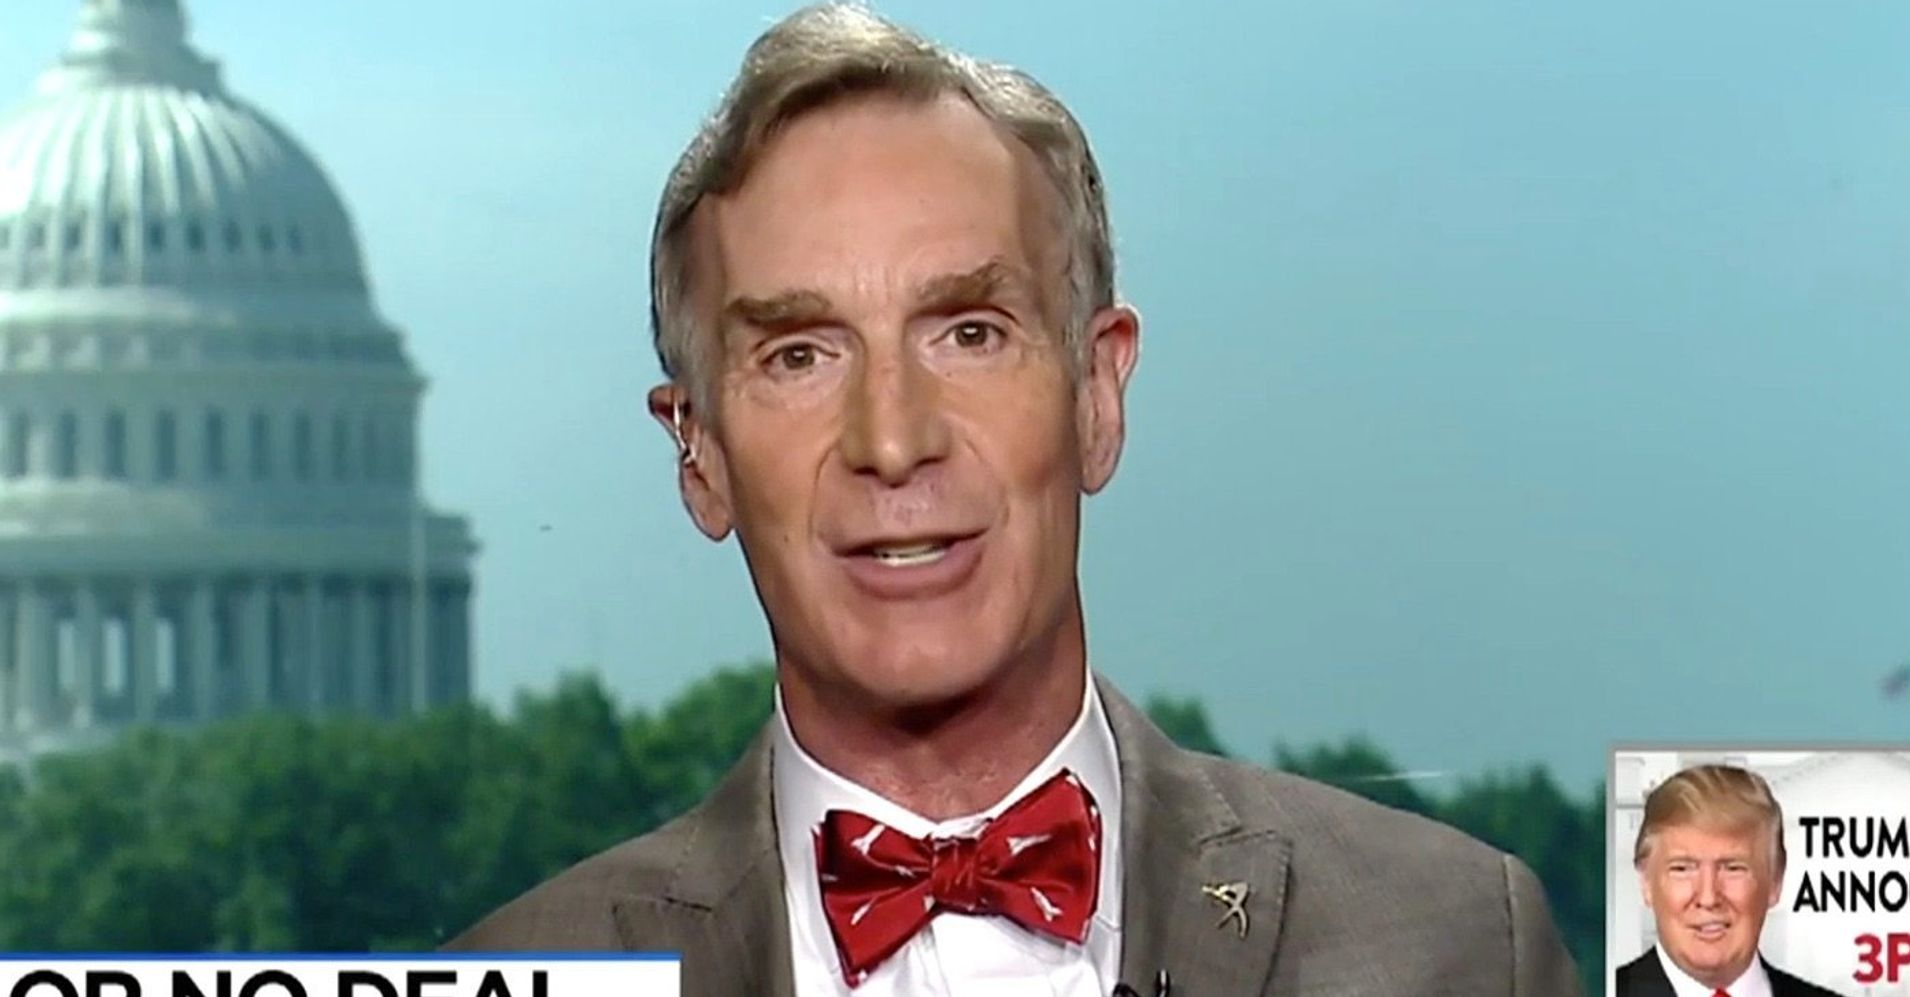 Bill Nye Warns Trump On Climate: 'You Can't Build A Border Wall Against CO2 Emissions'